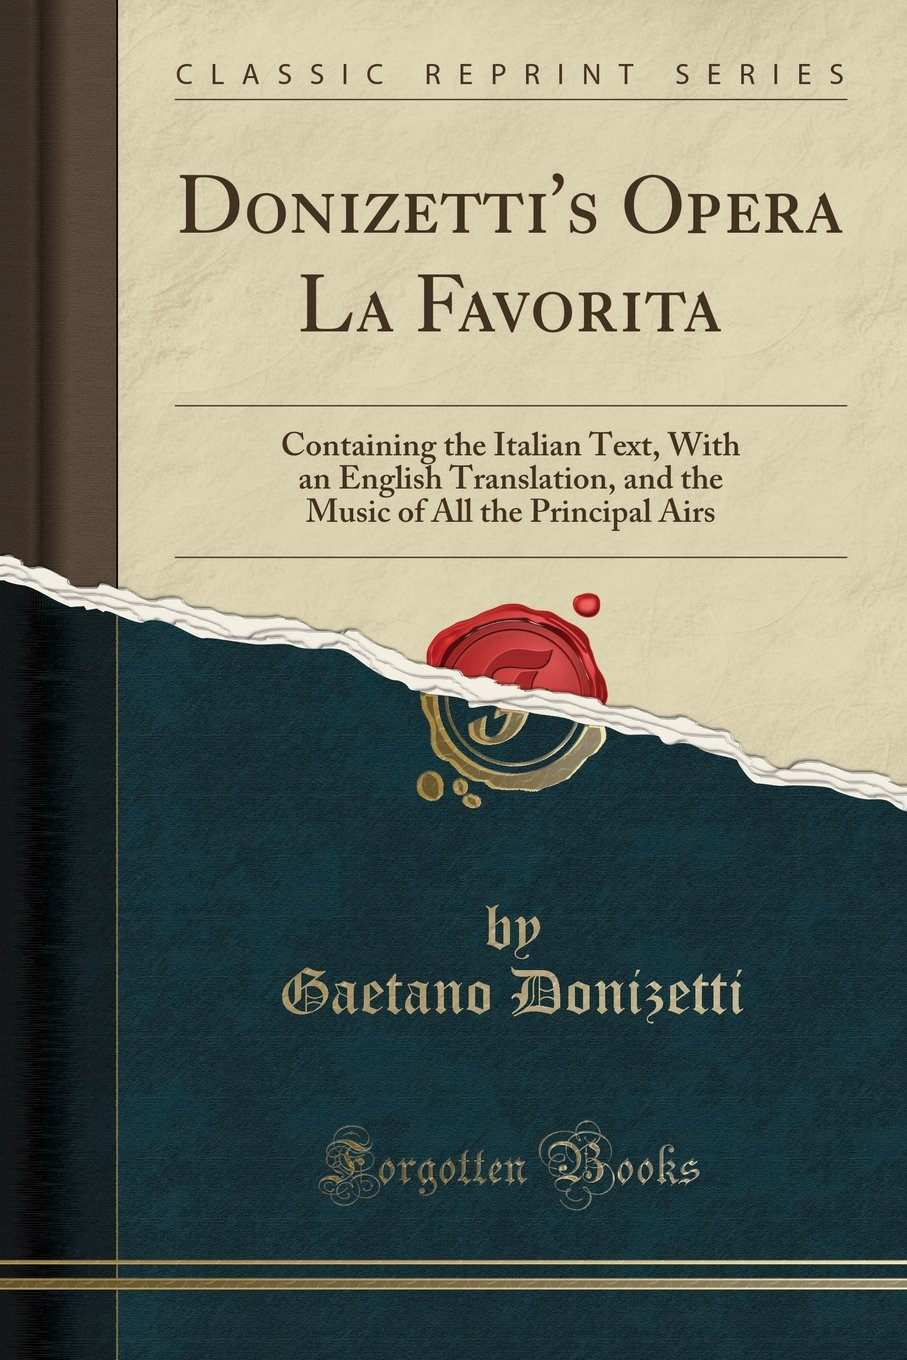 Donizetti's Opera La Favorita: Containing the Italian Text, With an English Translation, and the Music of All the Principal Airs (Classic Reprint) pdf